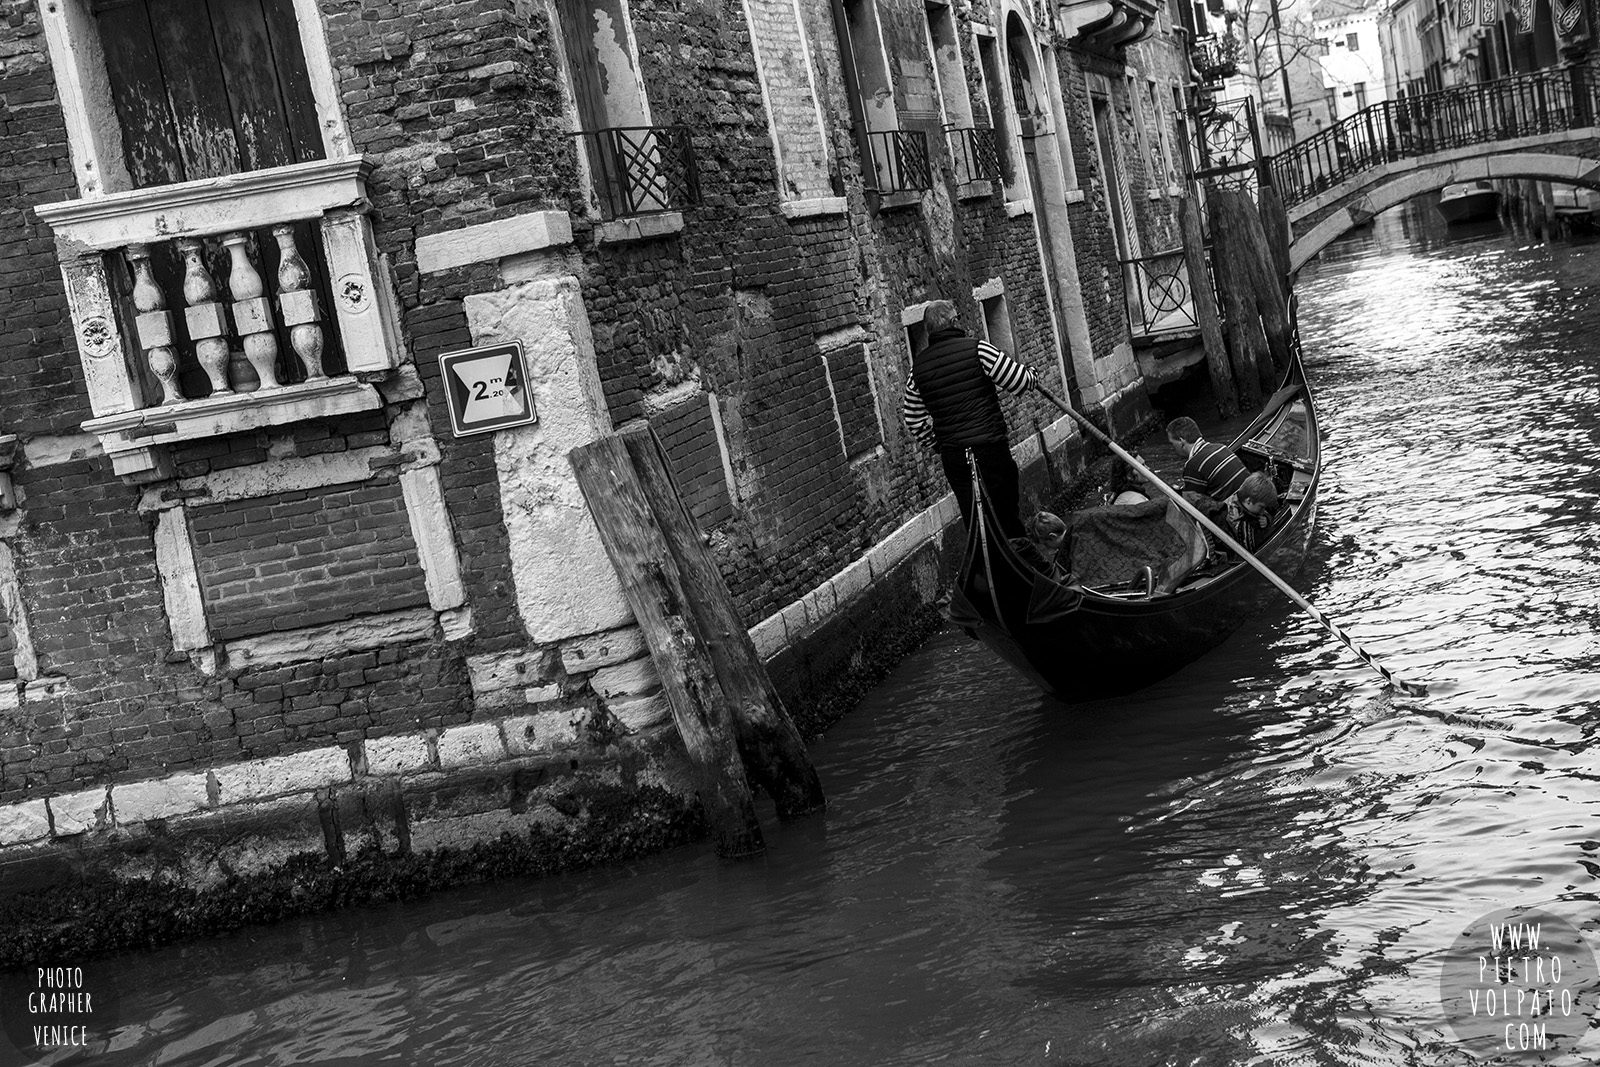 photographer venice photography workshop tour private photo walk exploring learning